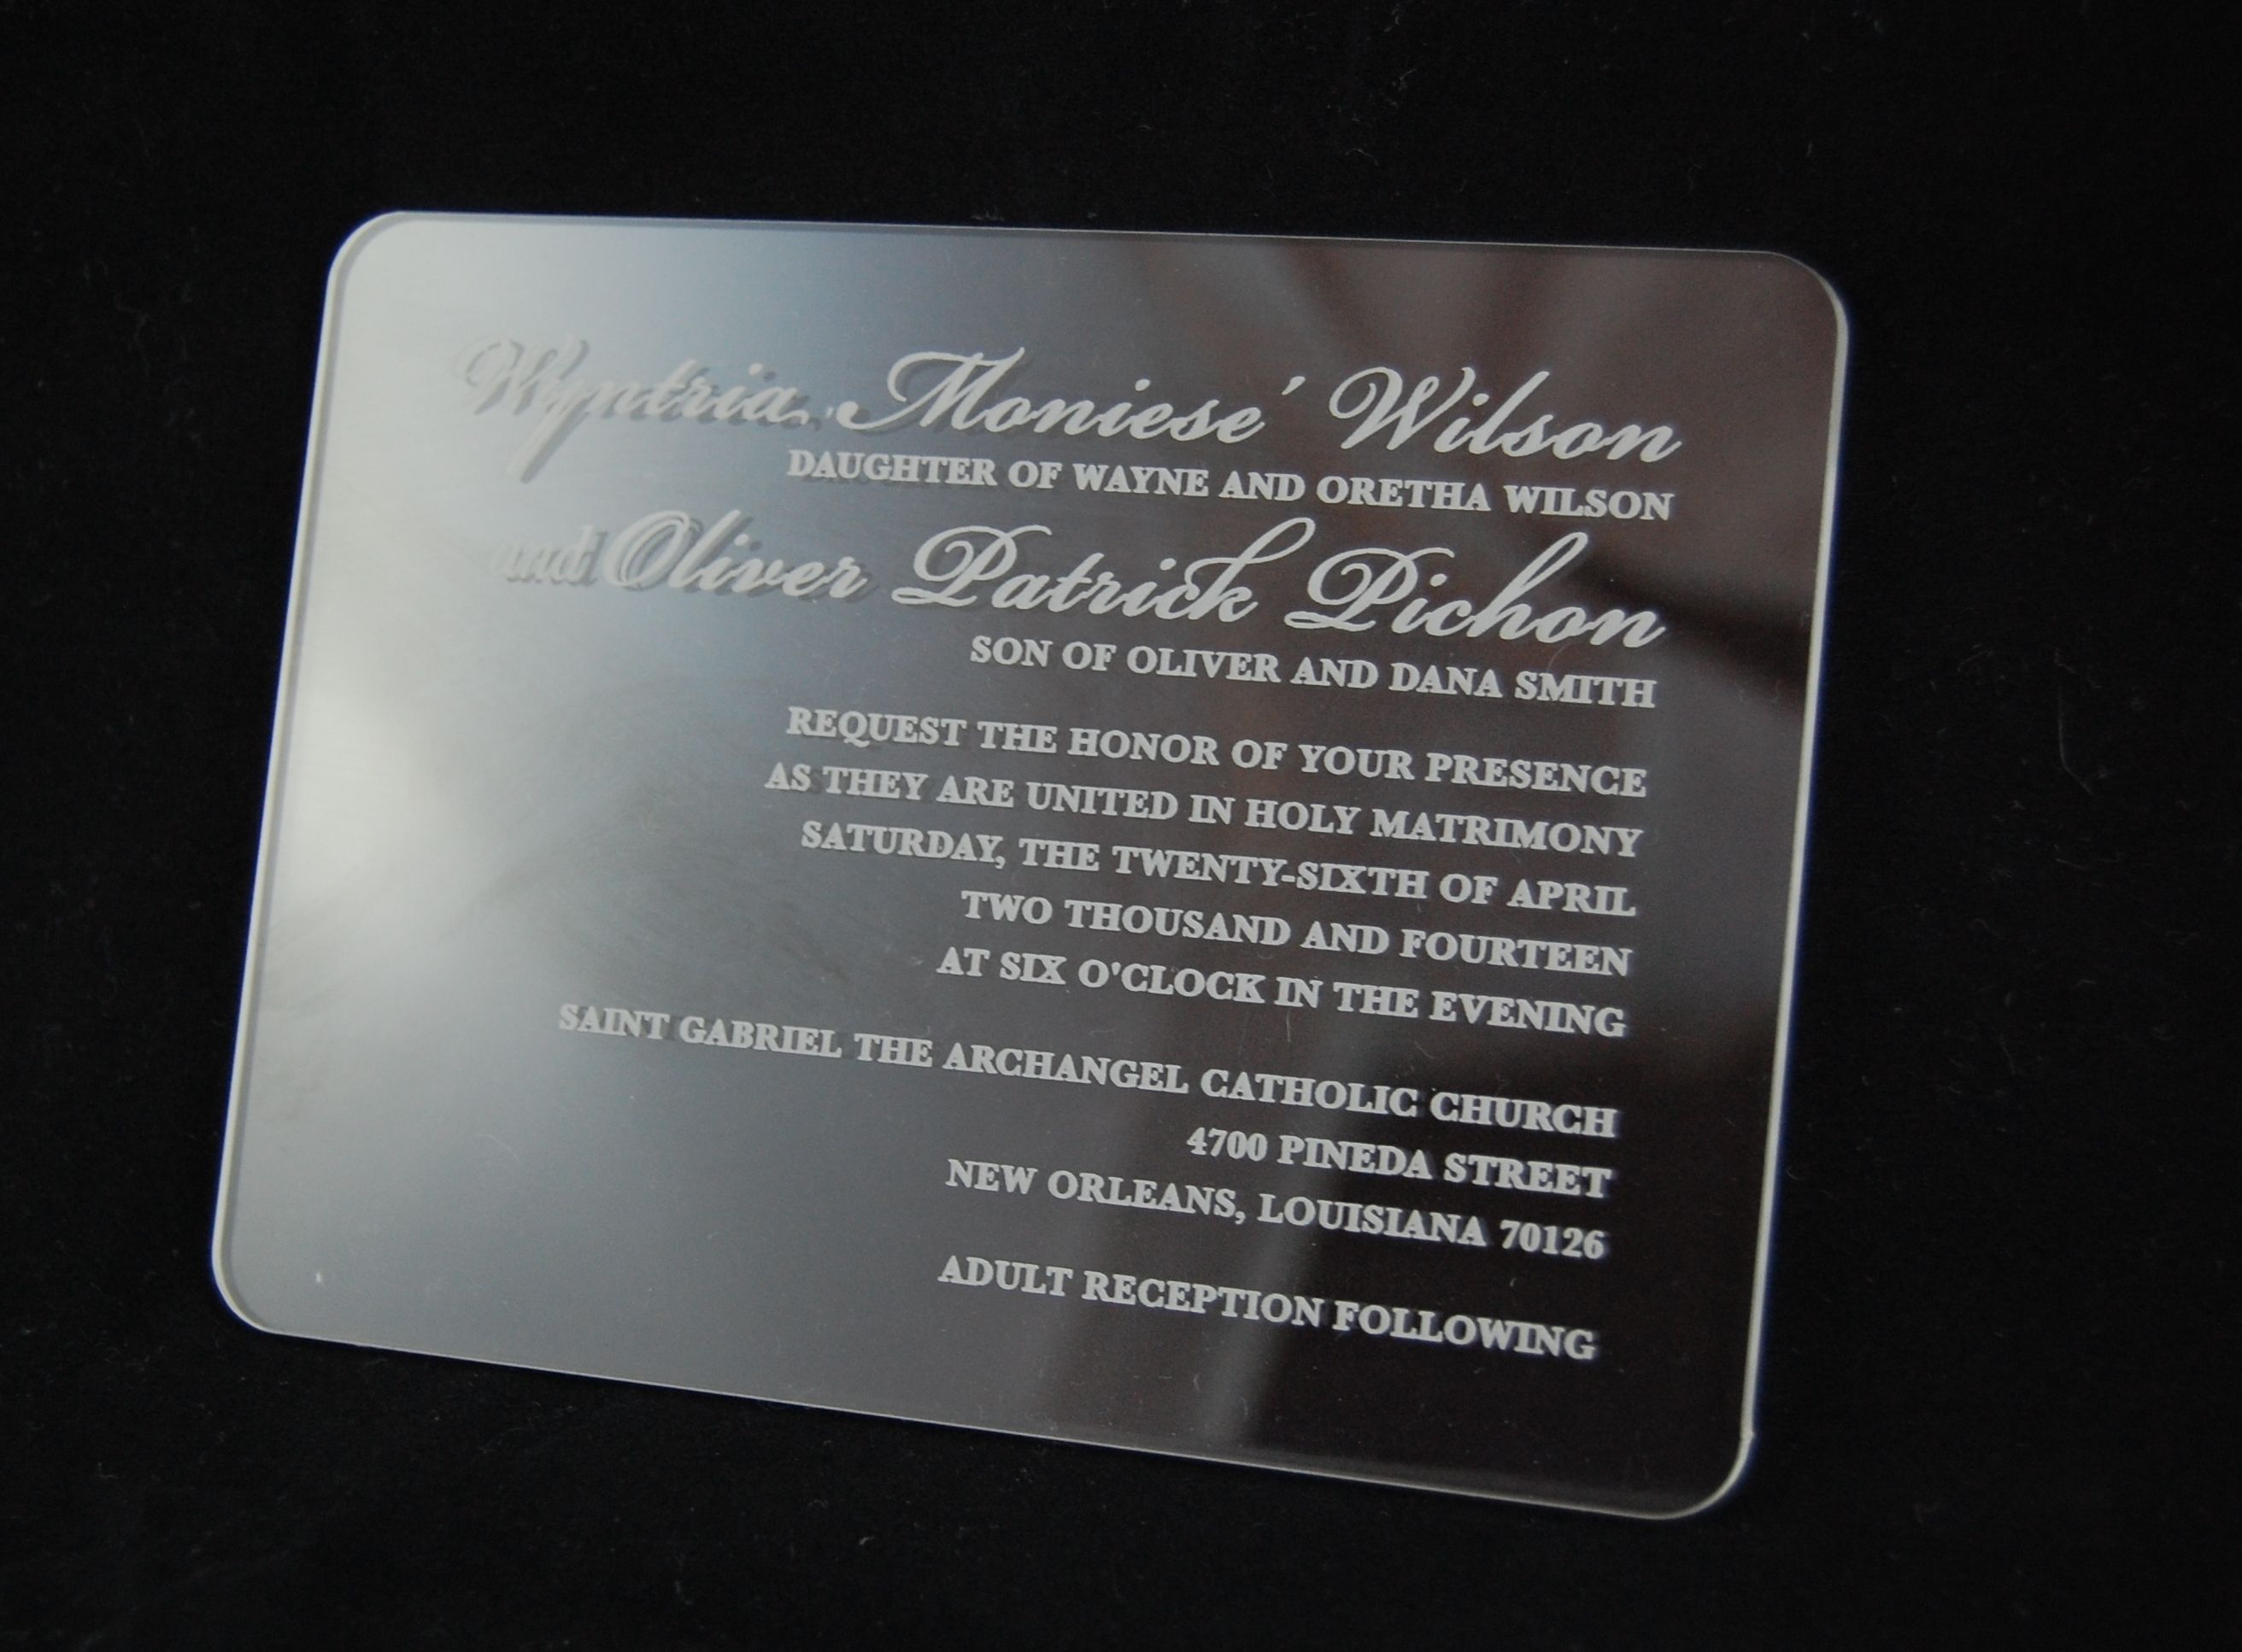 Offering Elegant Acrylic Wedding Invitations Reply Cards And Menus For Your Wedding Or Special Event We Engrave Clear Or Colored Acrylic